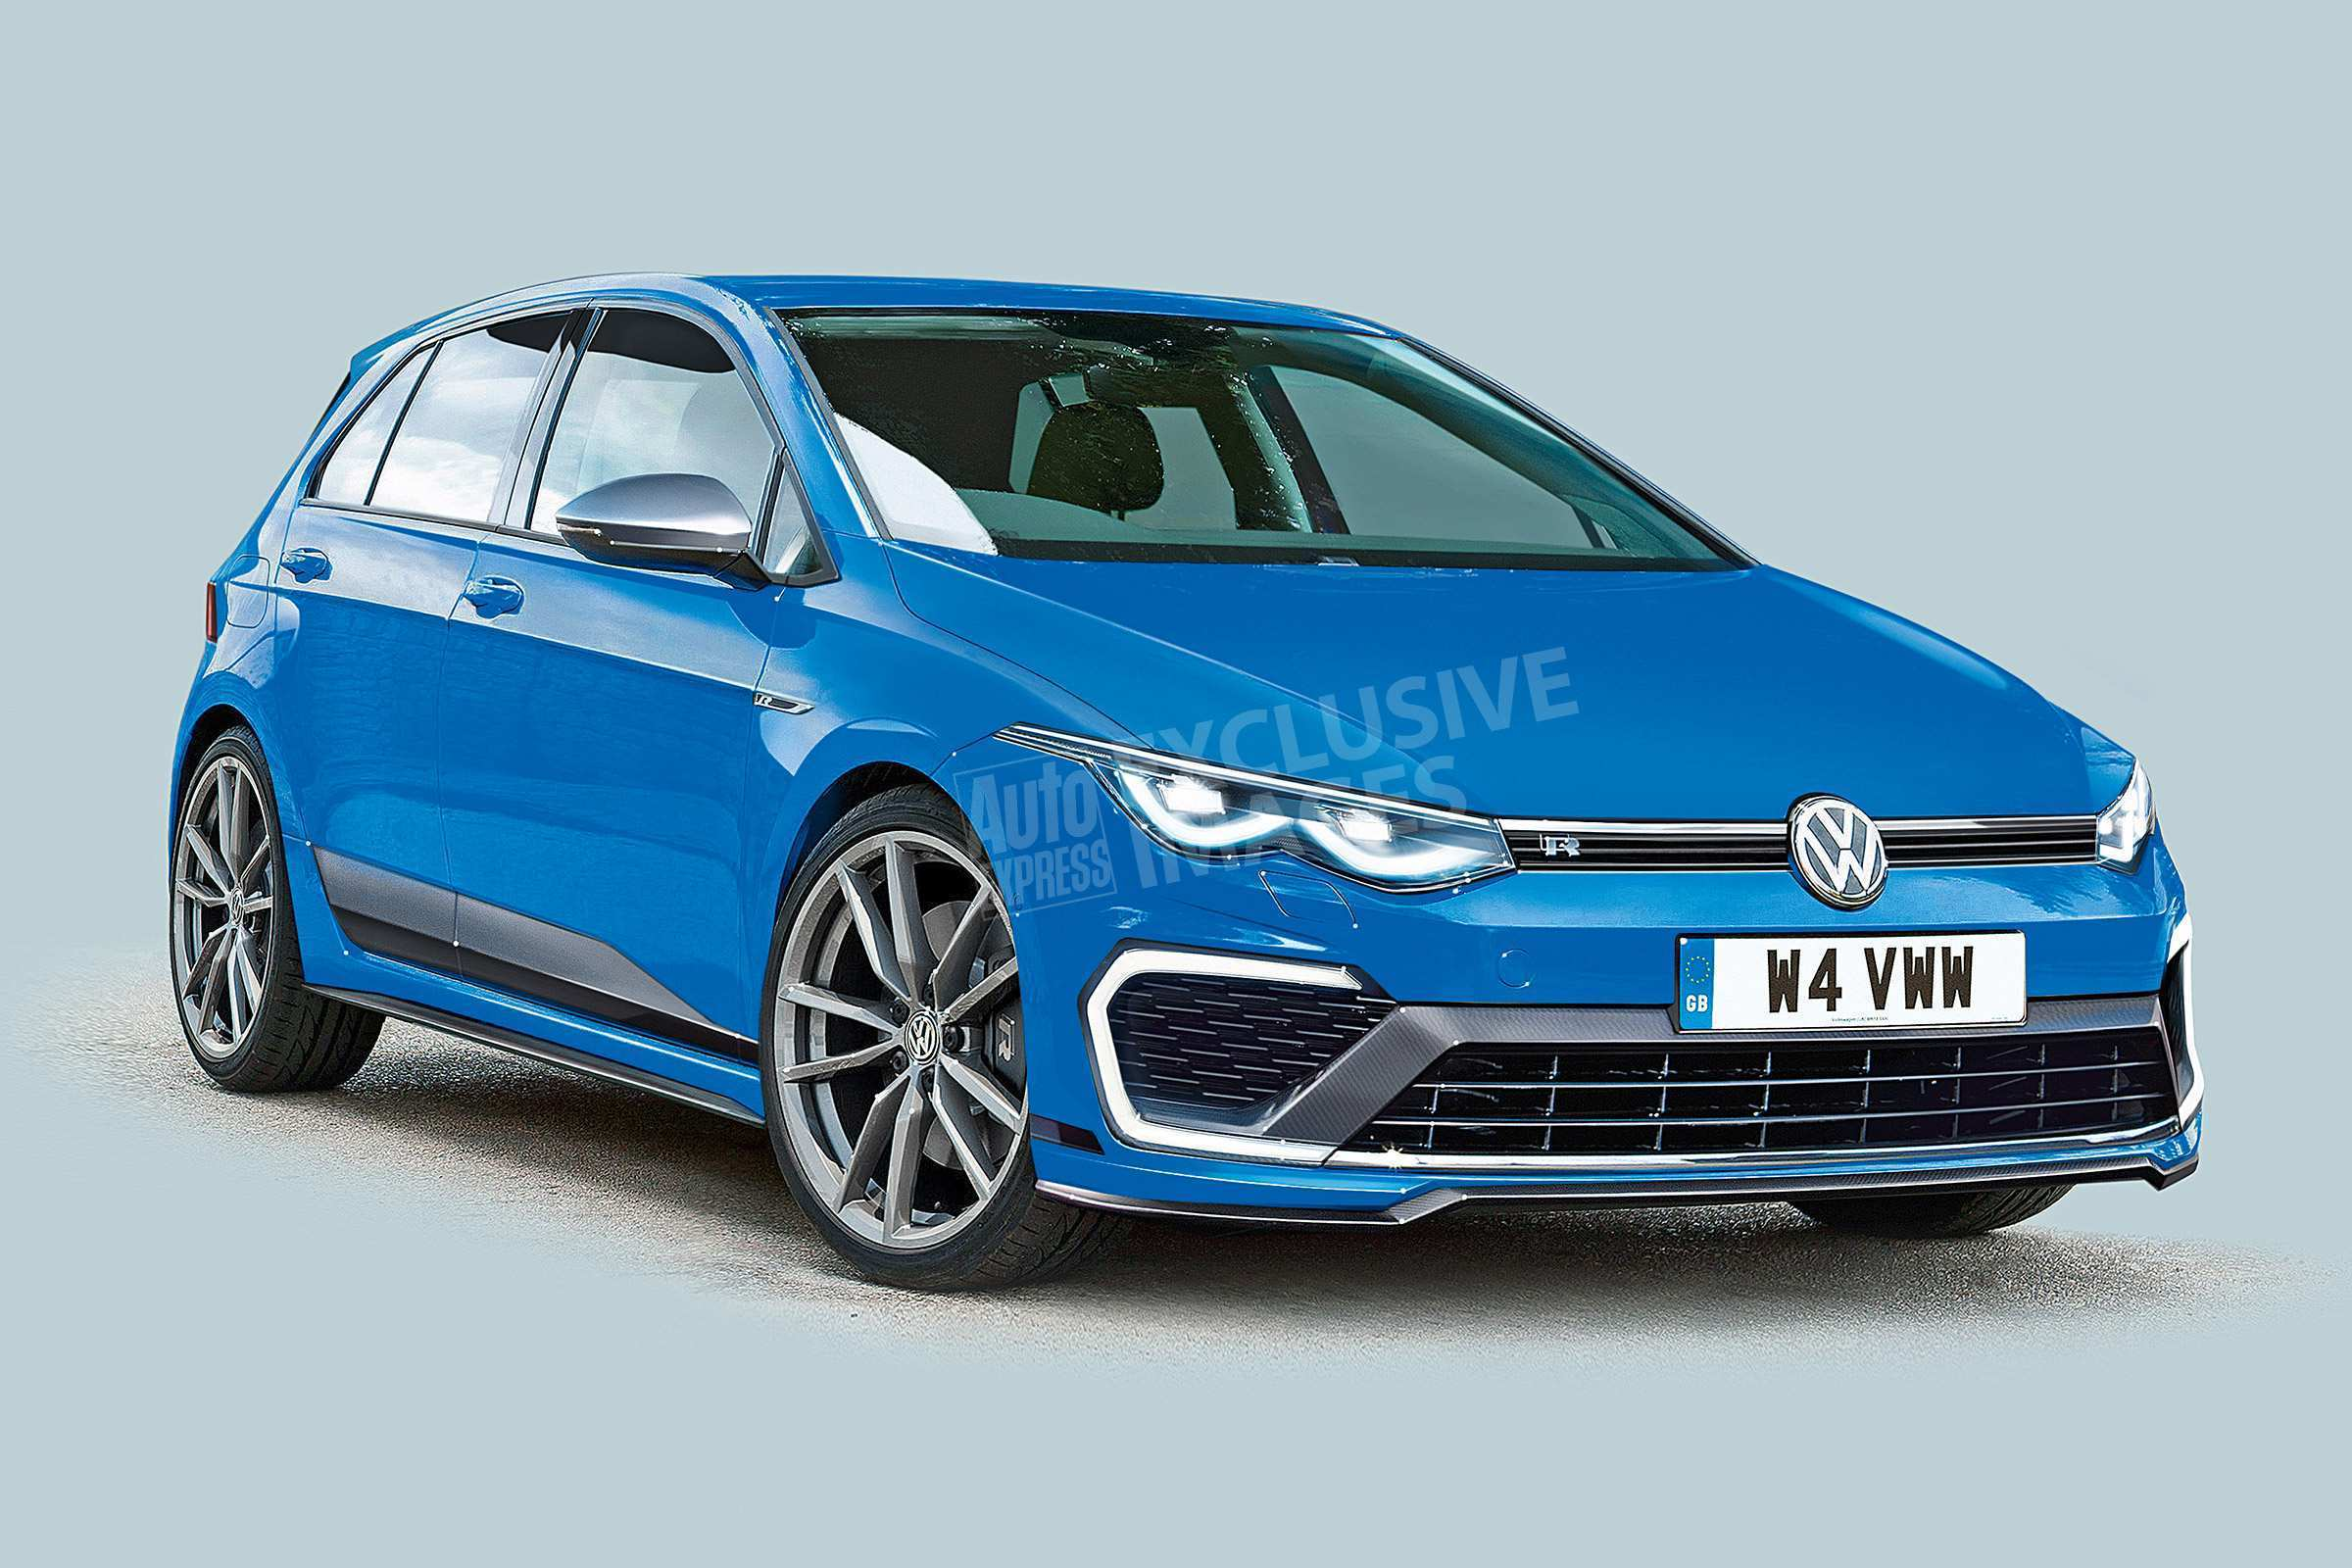 71 All New Volkswagen Golf Gti 2020 Performance